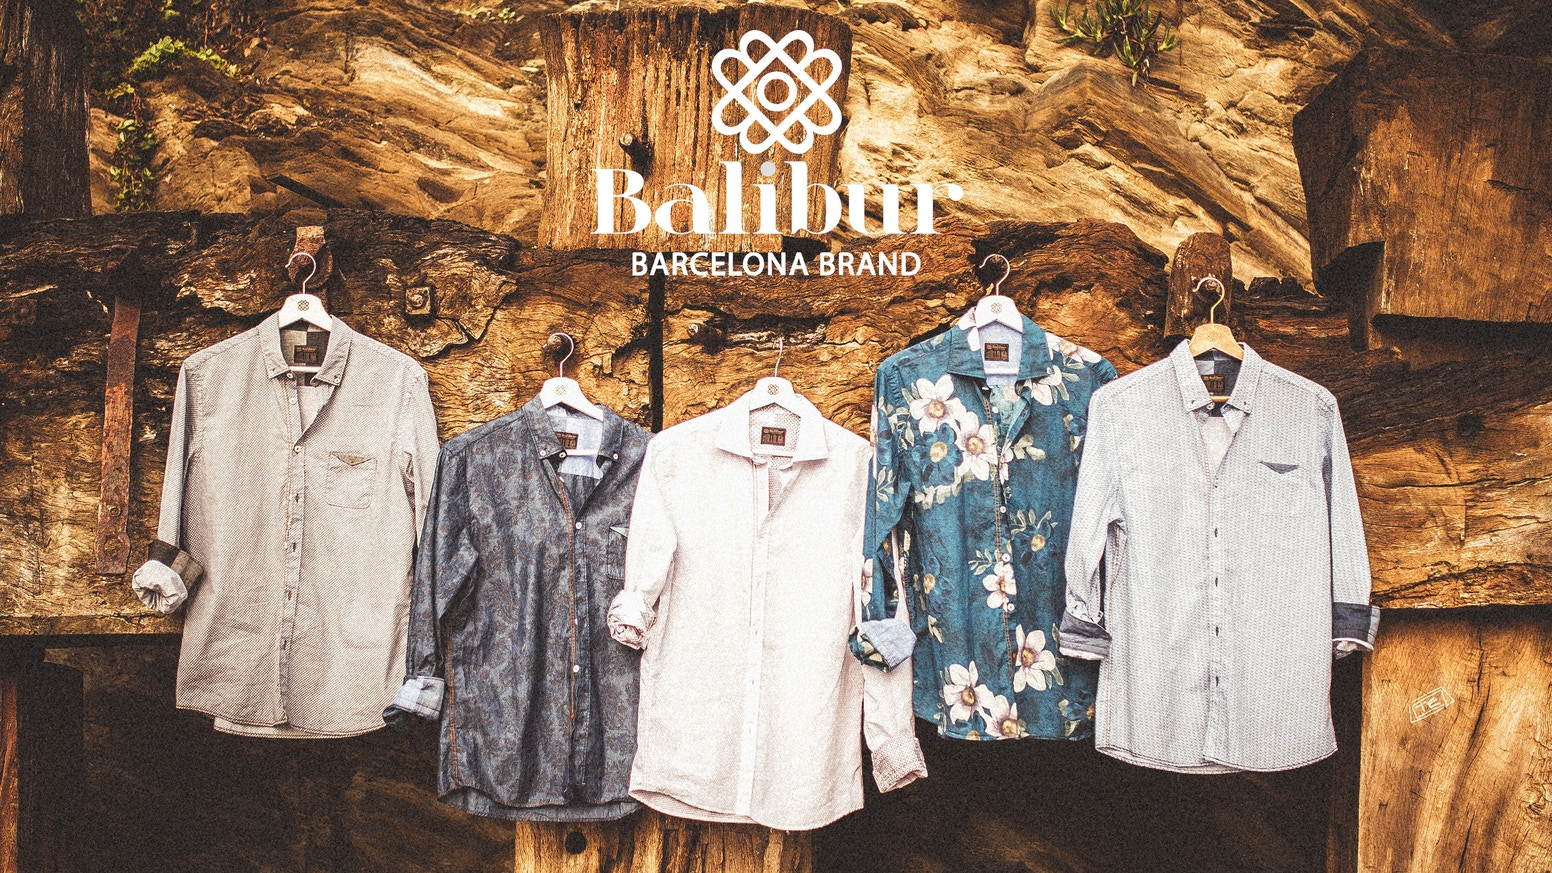 Unique designs 100% Made in Barcelona. Exclusive and limited edition shirts, sustainable and made in local factories.